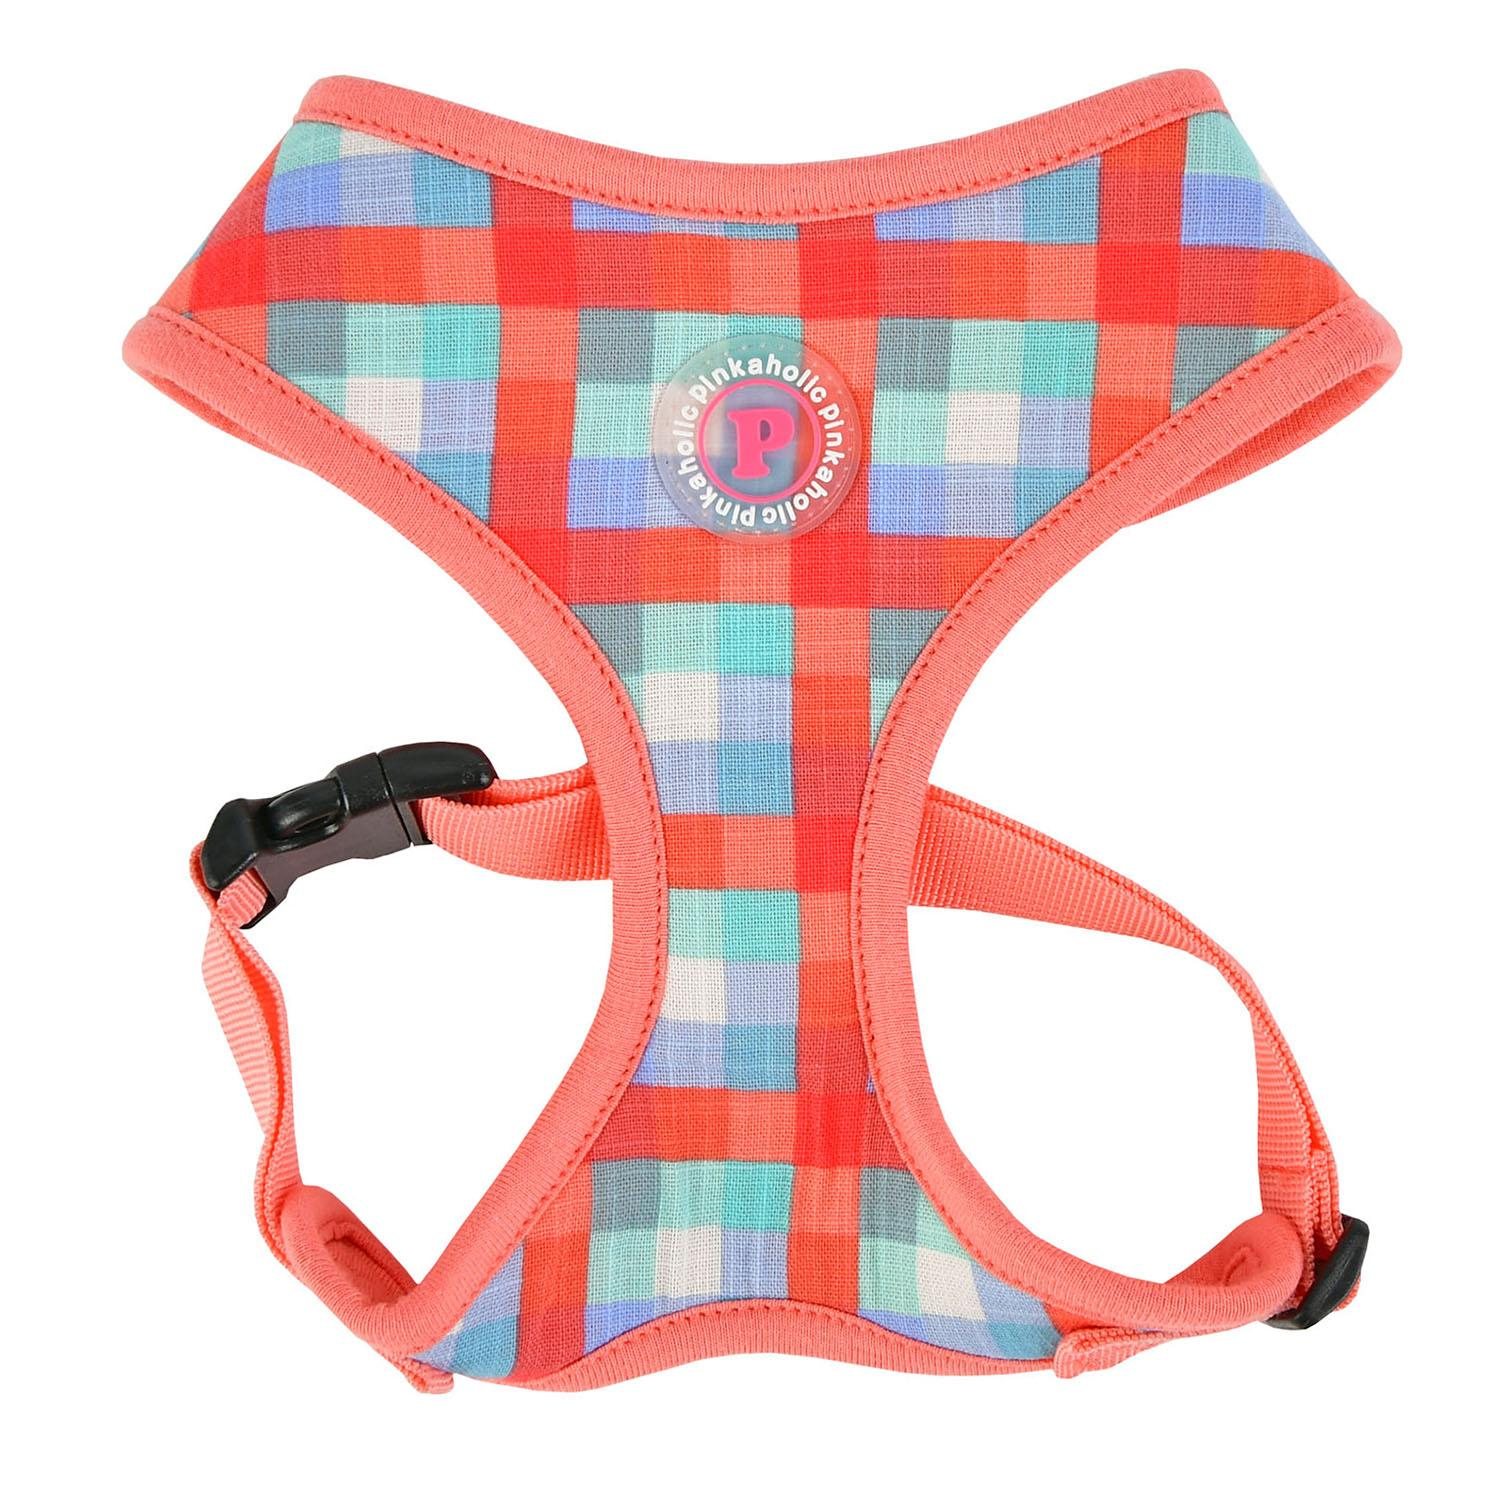 Vivica Basic Style Dog Harness by Pinkaholic - Pink